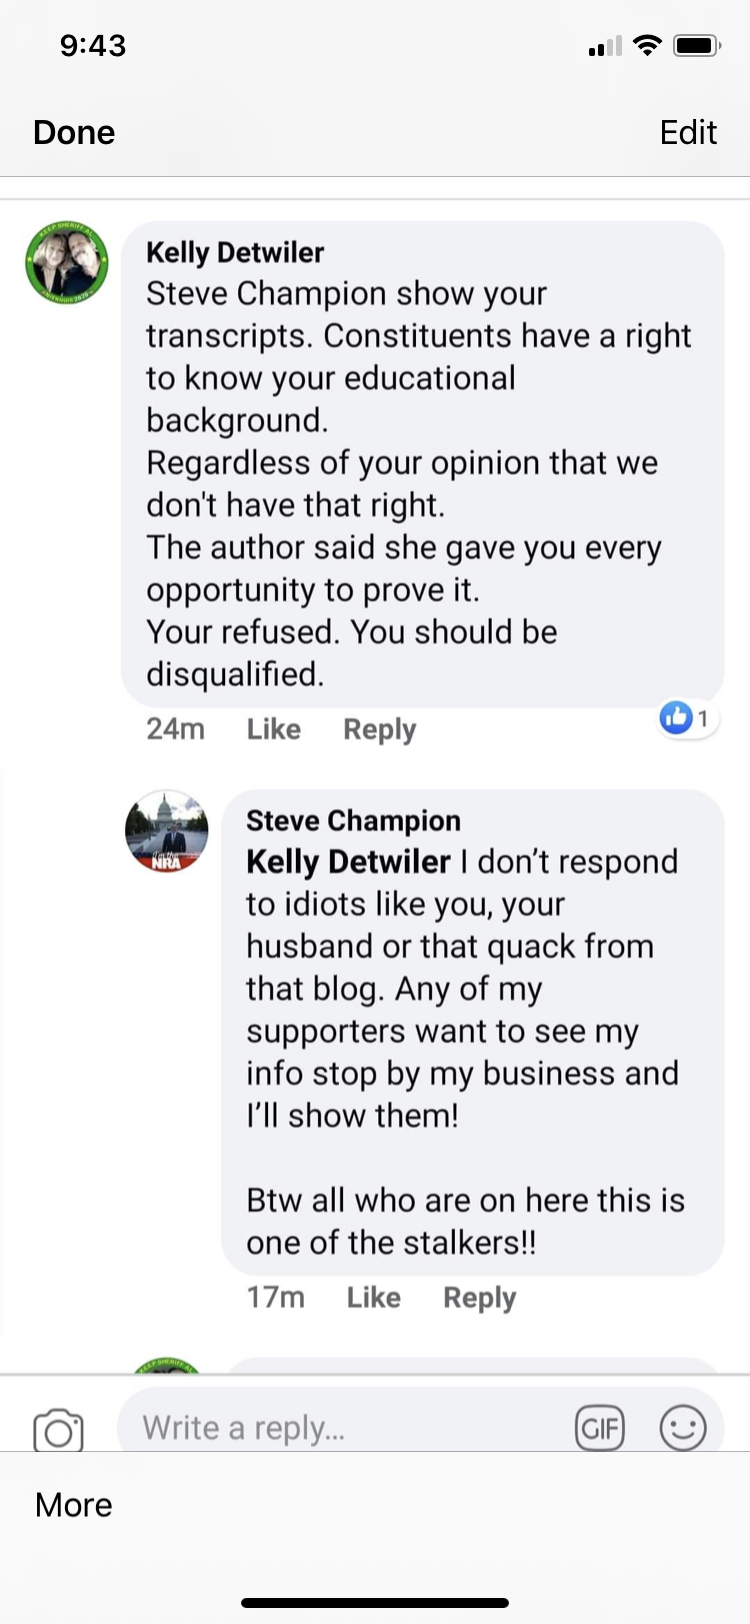 Steve Champion's insulting social media post.